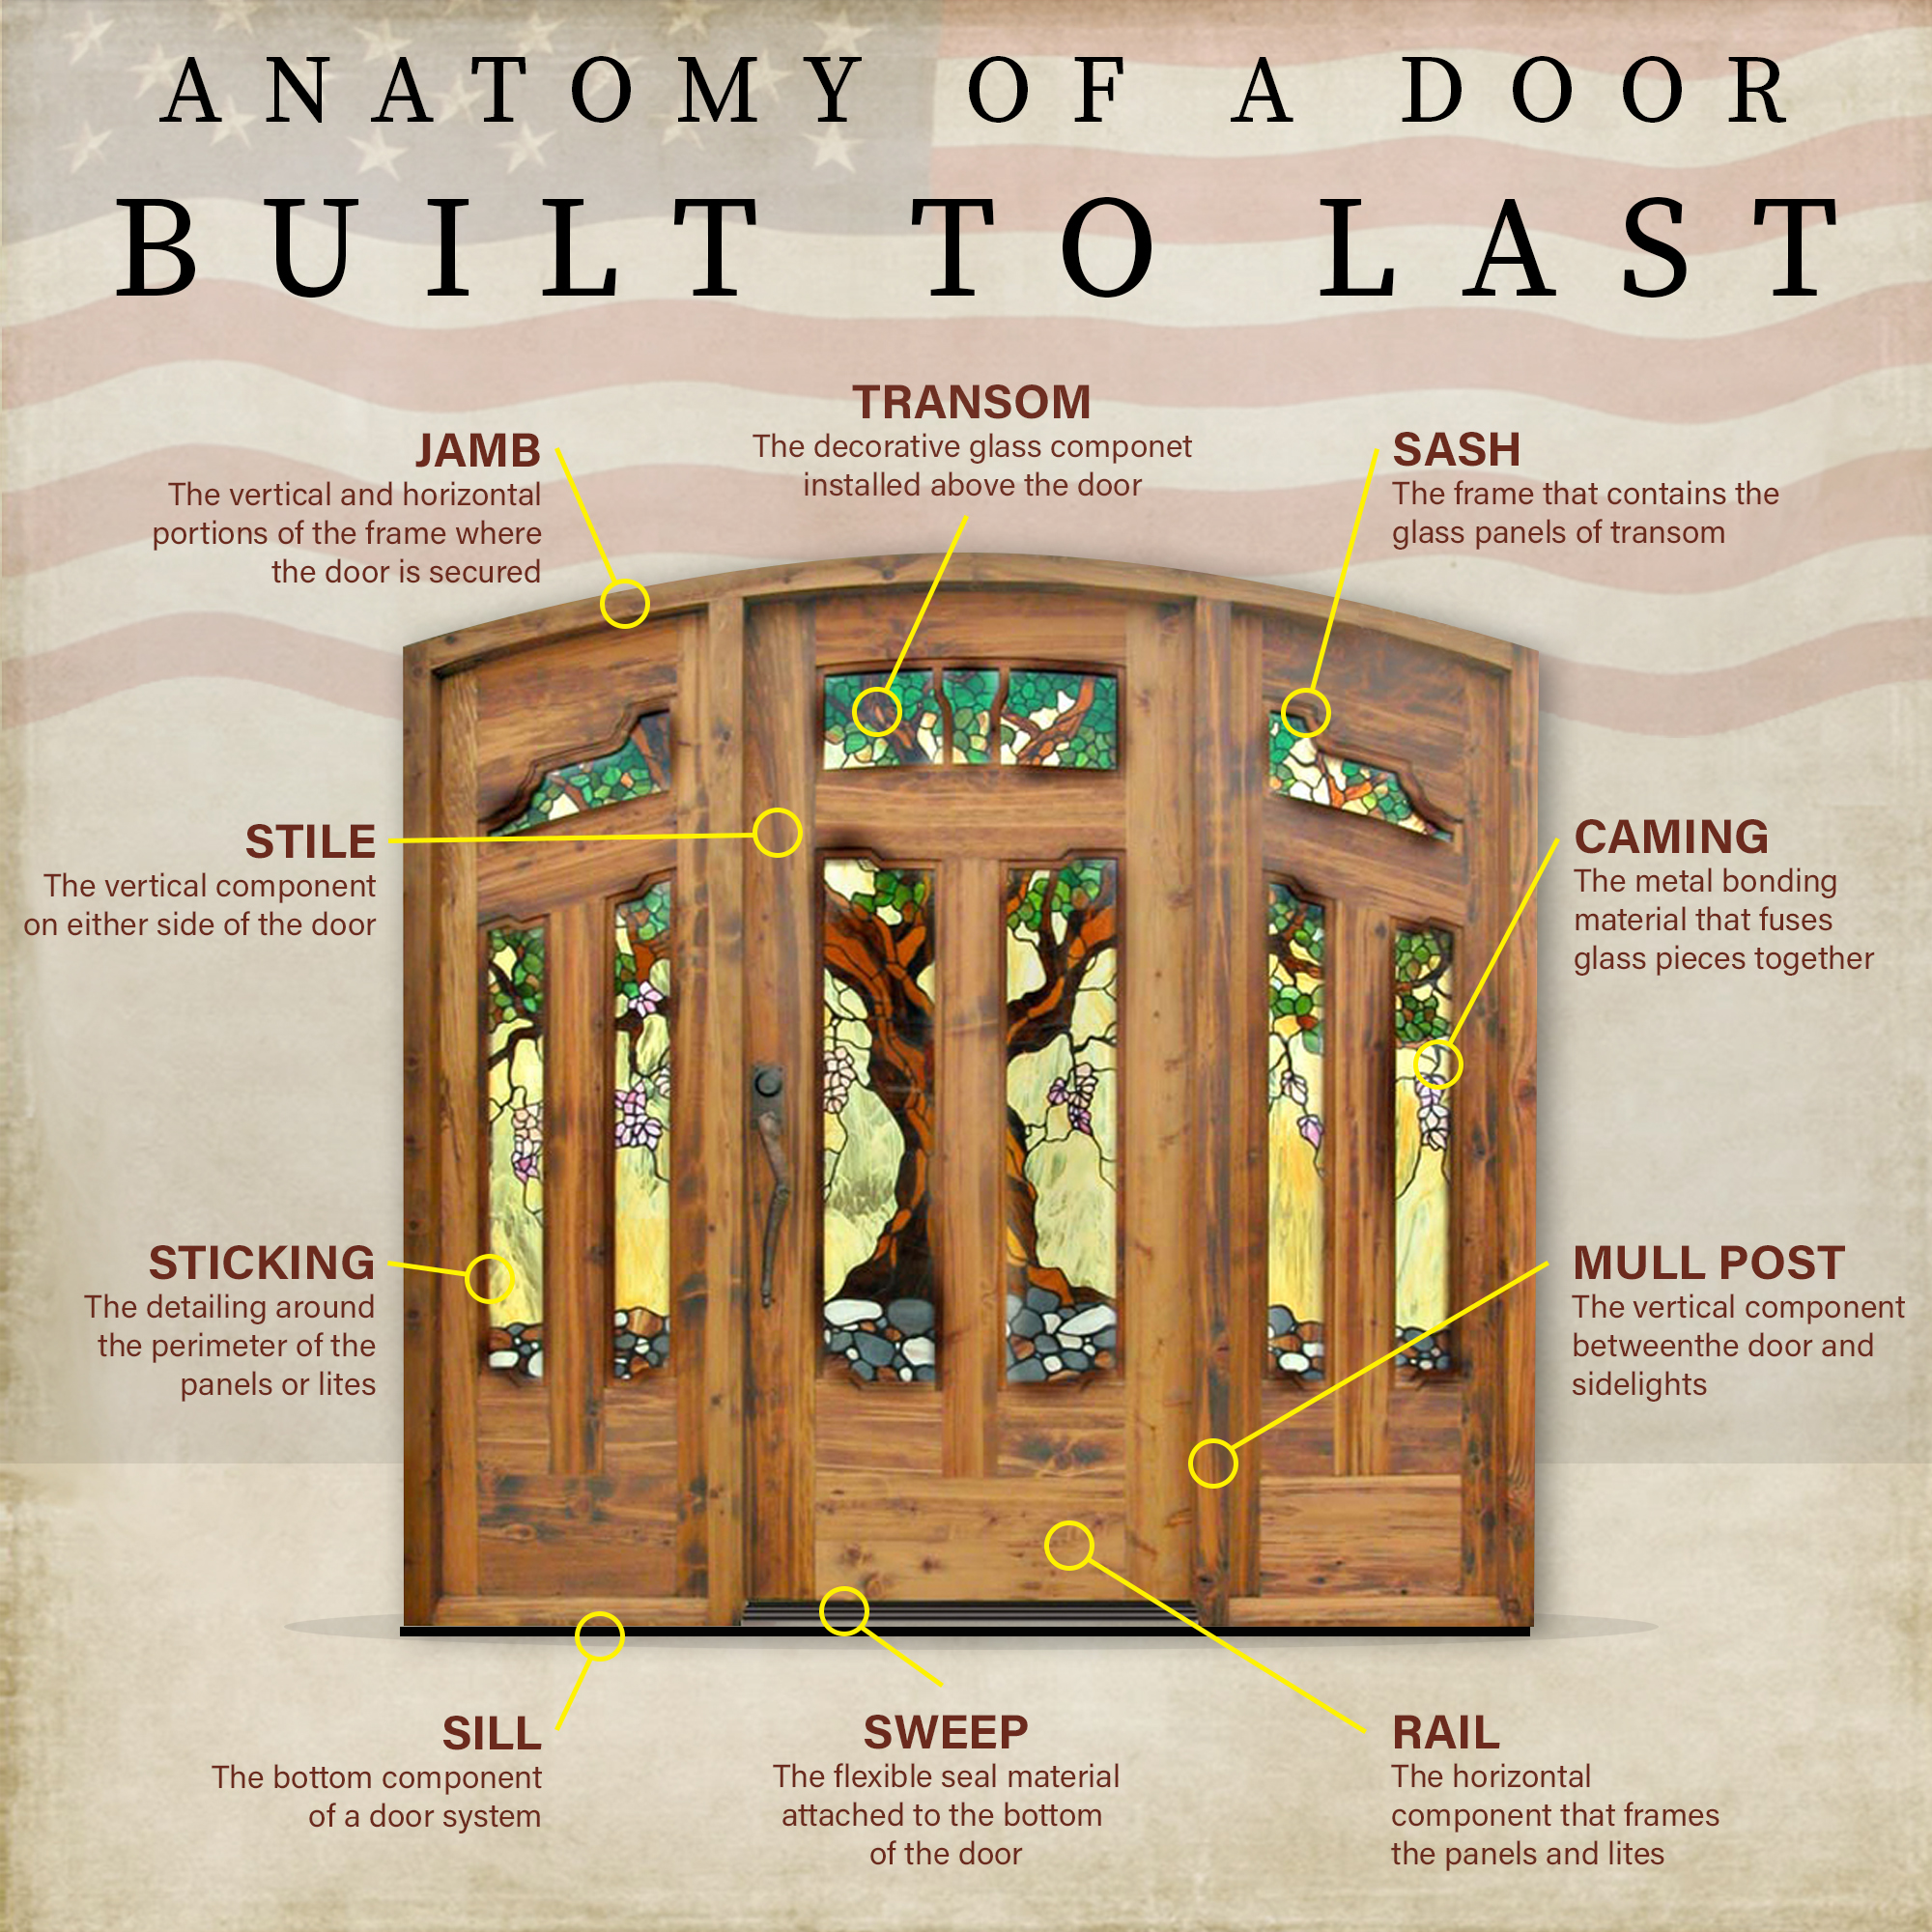 Anatomy Of A Door: Built To Stand The Test Of Time